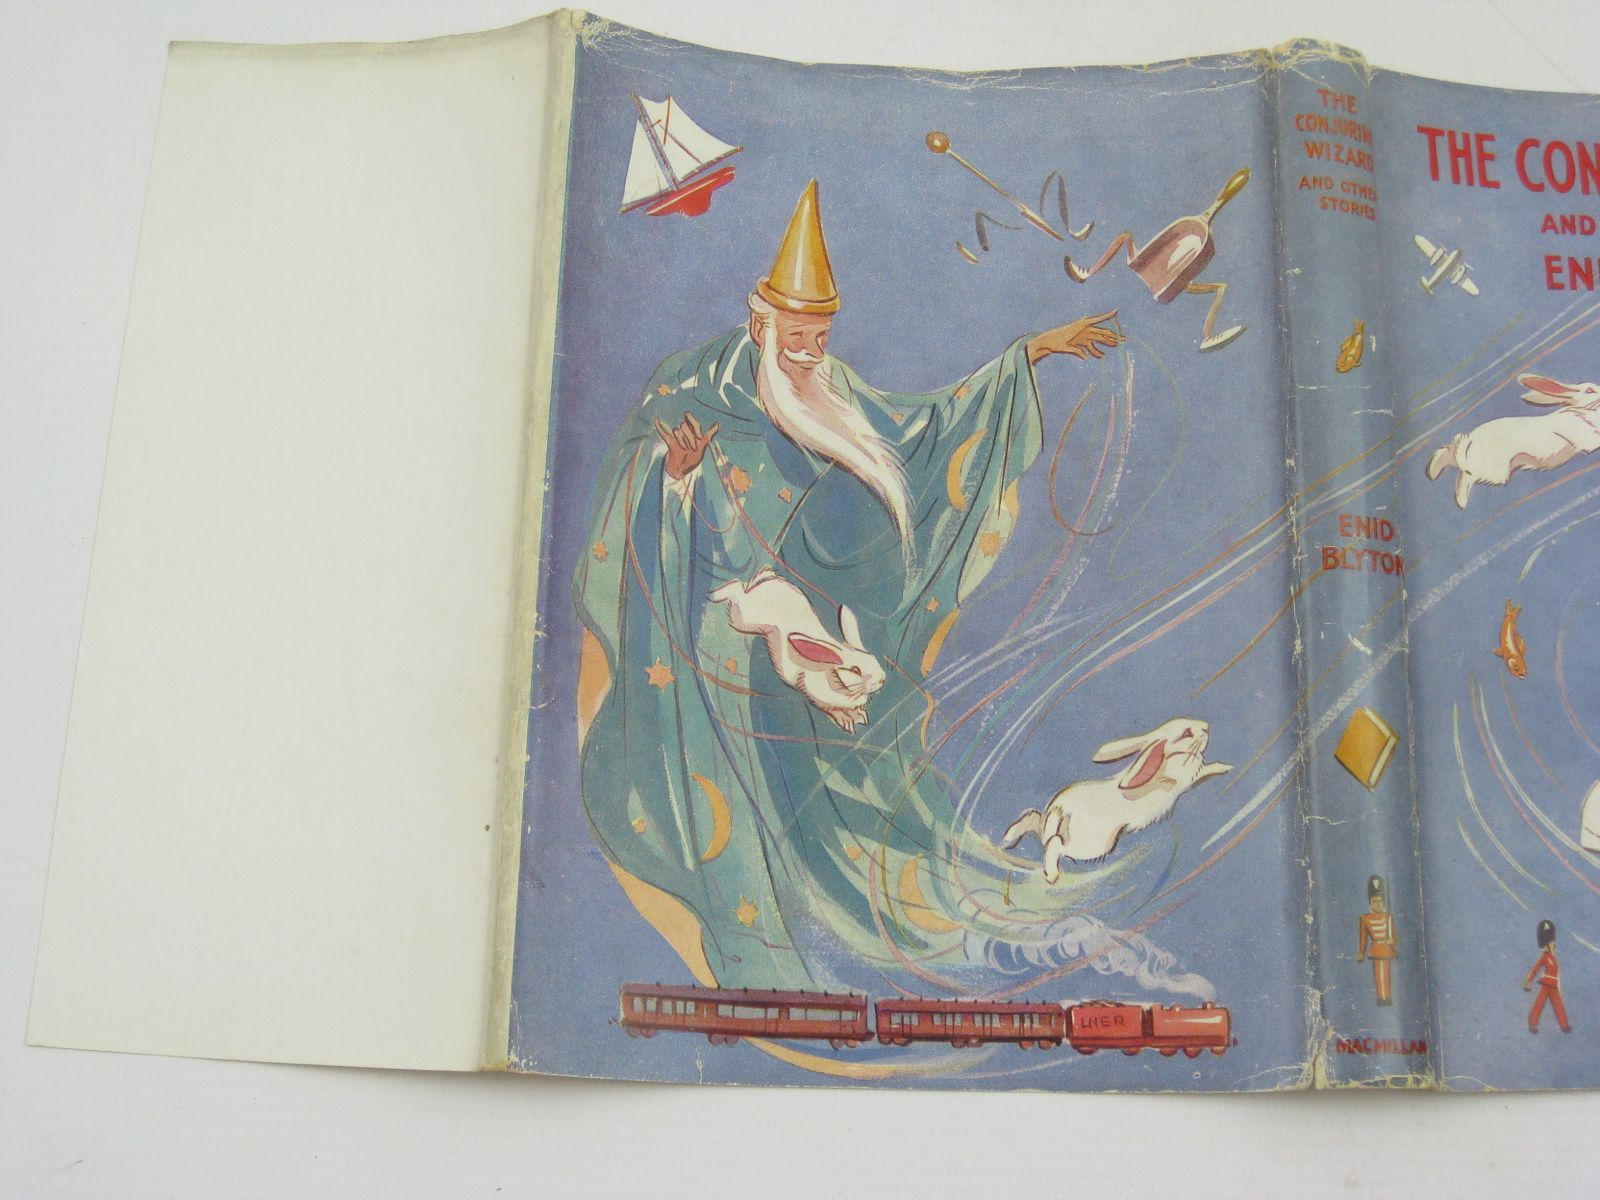 Photo of THE CONJURING WIZARD AND OTHER STORIES written by Blyton, Enid illustrated by Soper, Eileen published by Macmillan & Co. Ltd. (STOCK CODE: 1406994)  for sale by Stella & Rose's Books